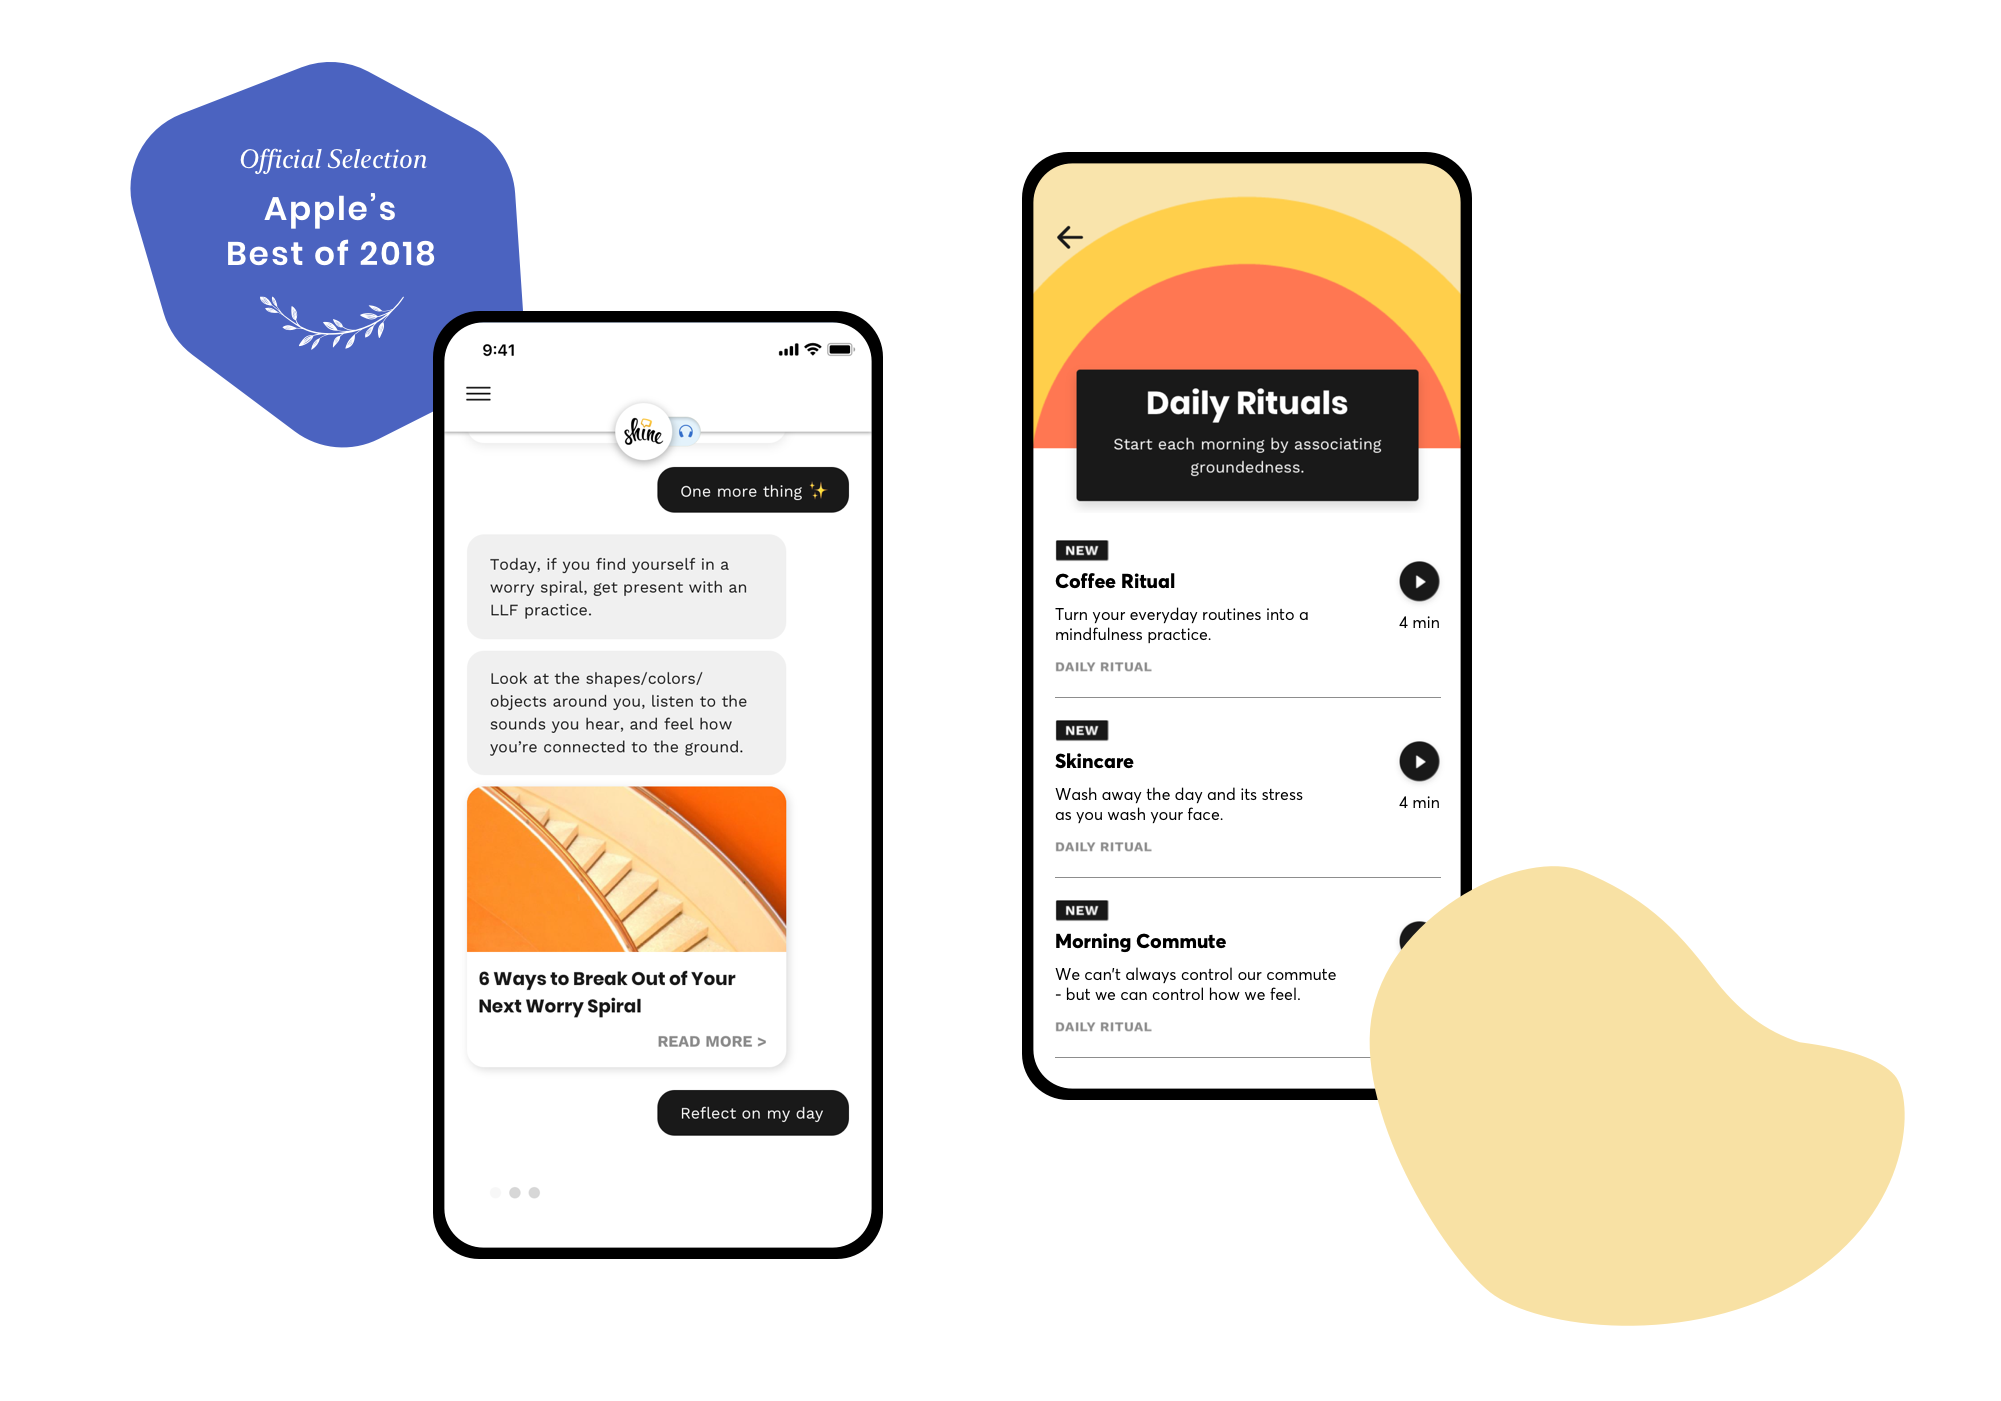 Shine app, Best of 2018 Award